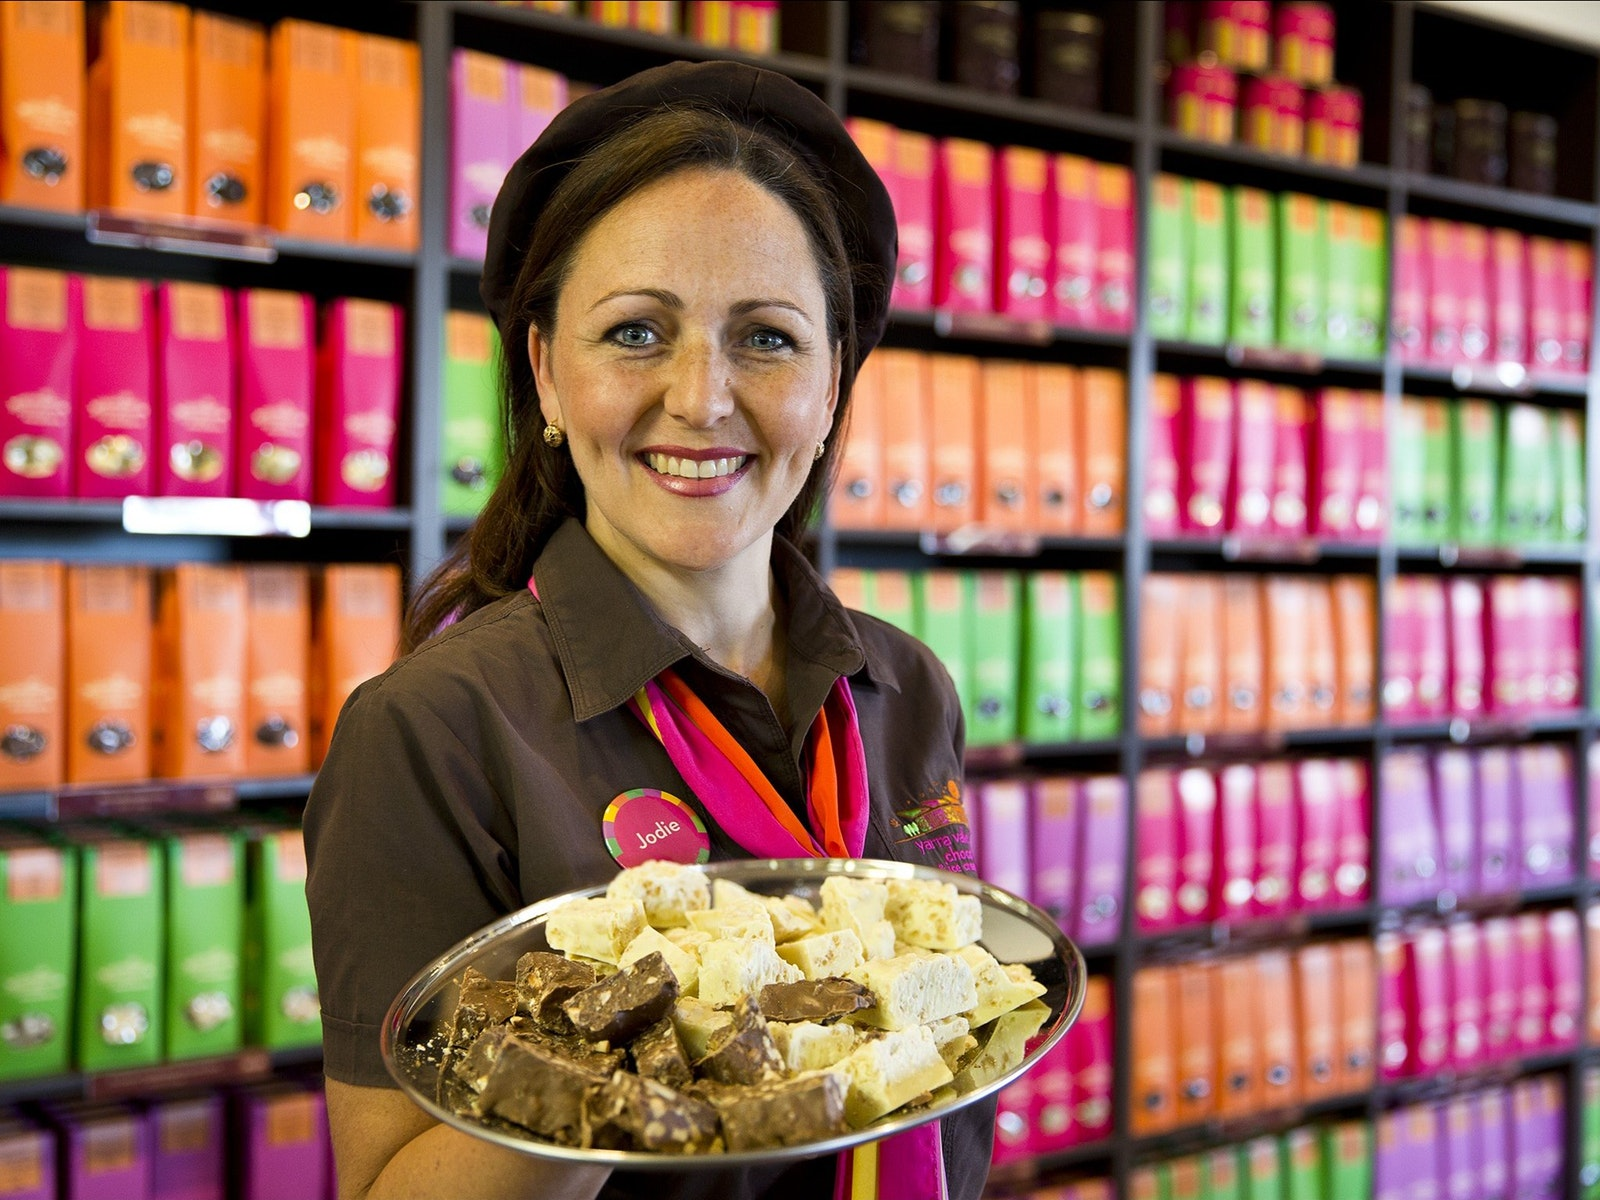 Yarra Valley Chocolaterie & Ice Creamery Chocolate Lovers Luxury Tour Experience